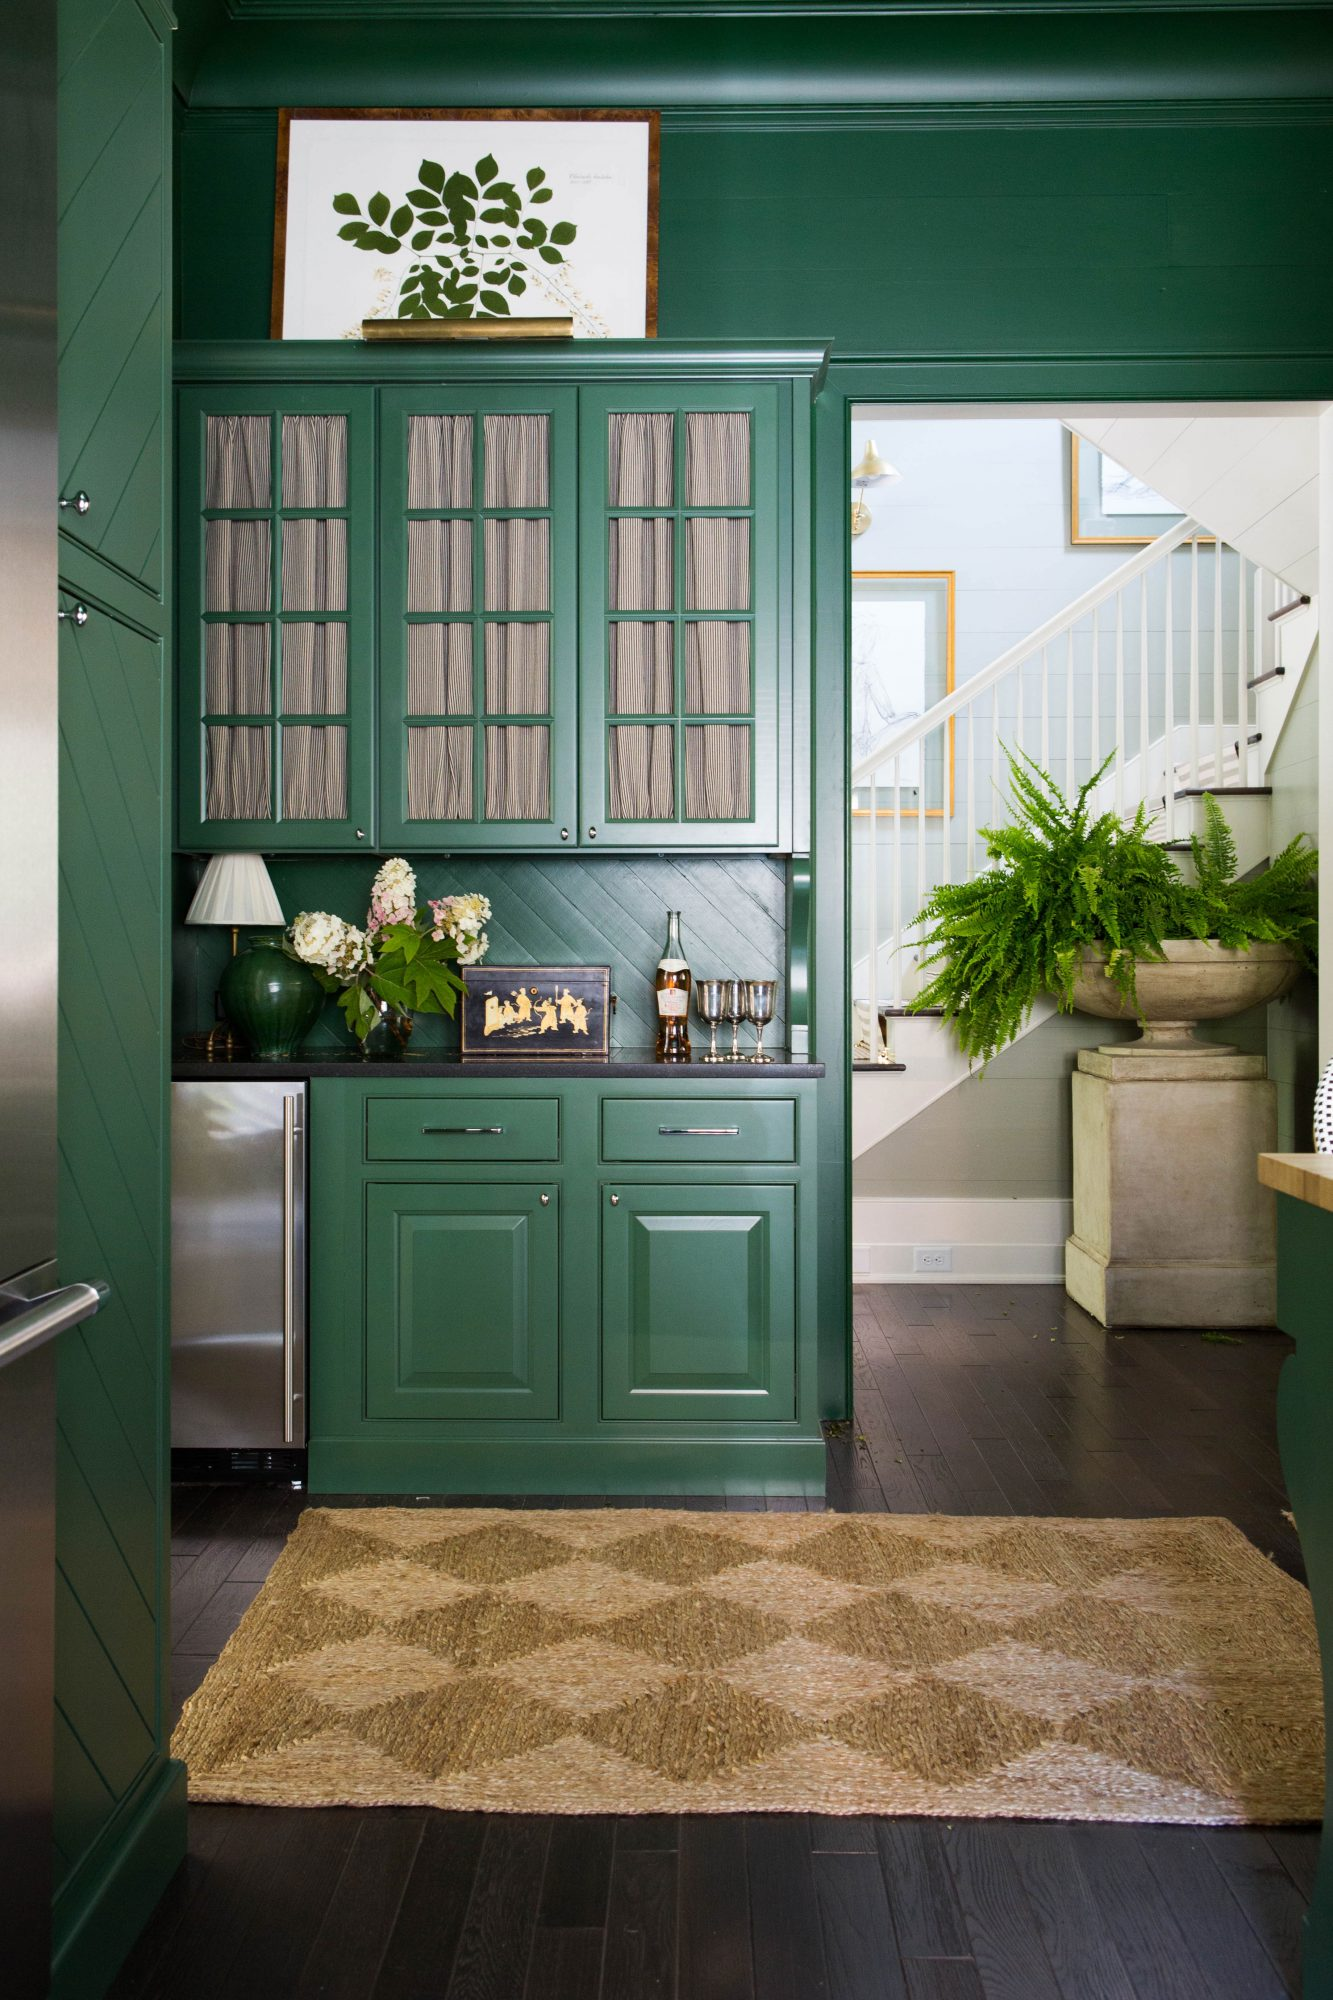 Painting-Trim-Cabinets-Same-Color-Emerald-Green